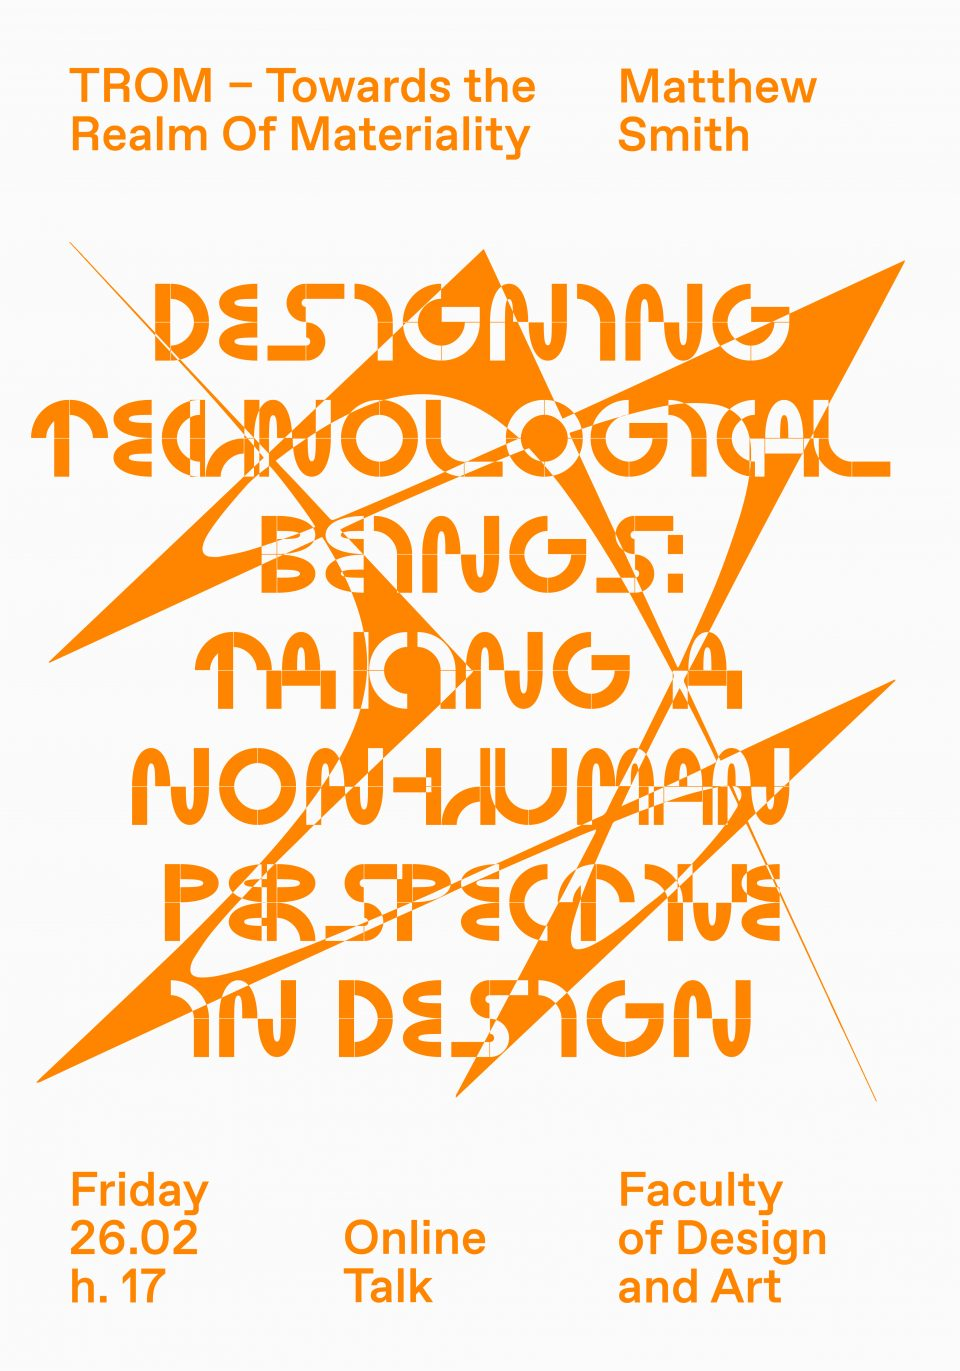 Matthew Lee-Smith: Designing Technological Beings_Taking a Non-Human Perspective in Design